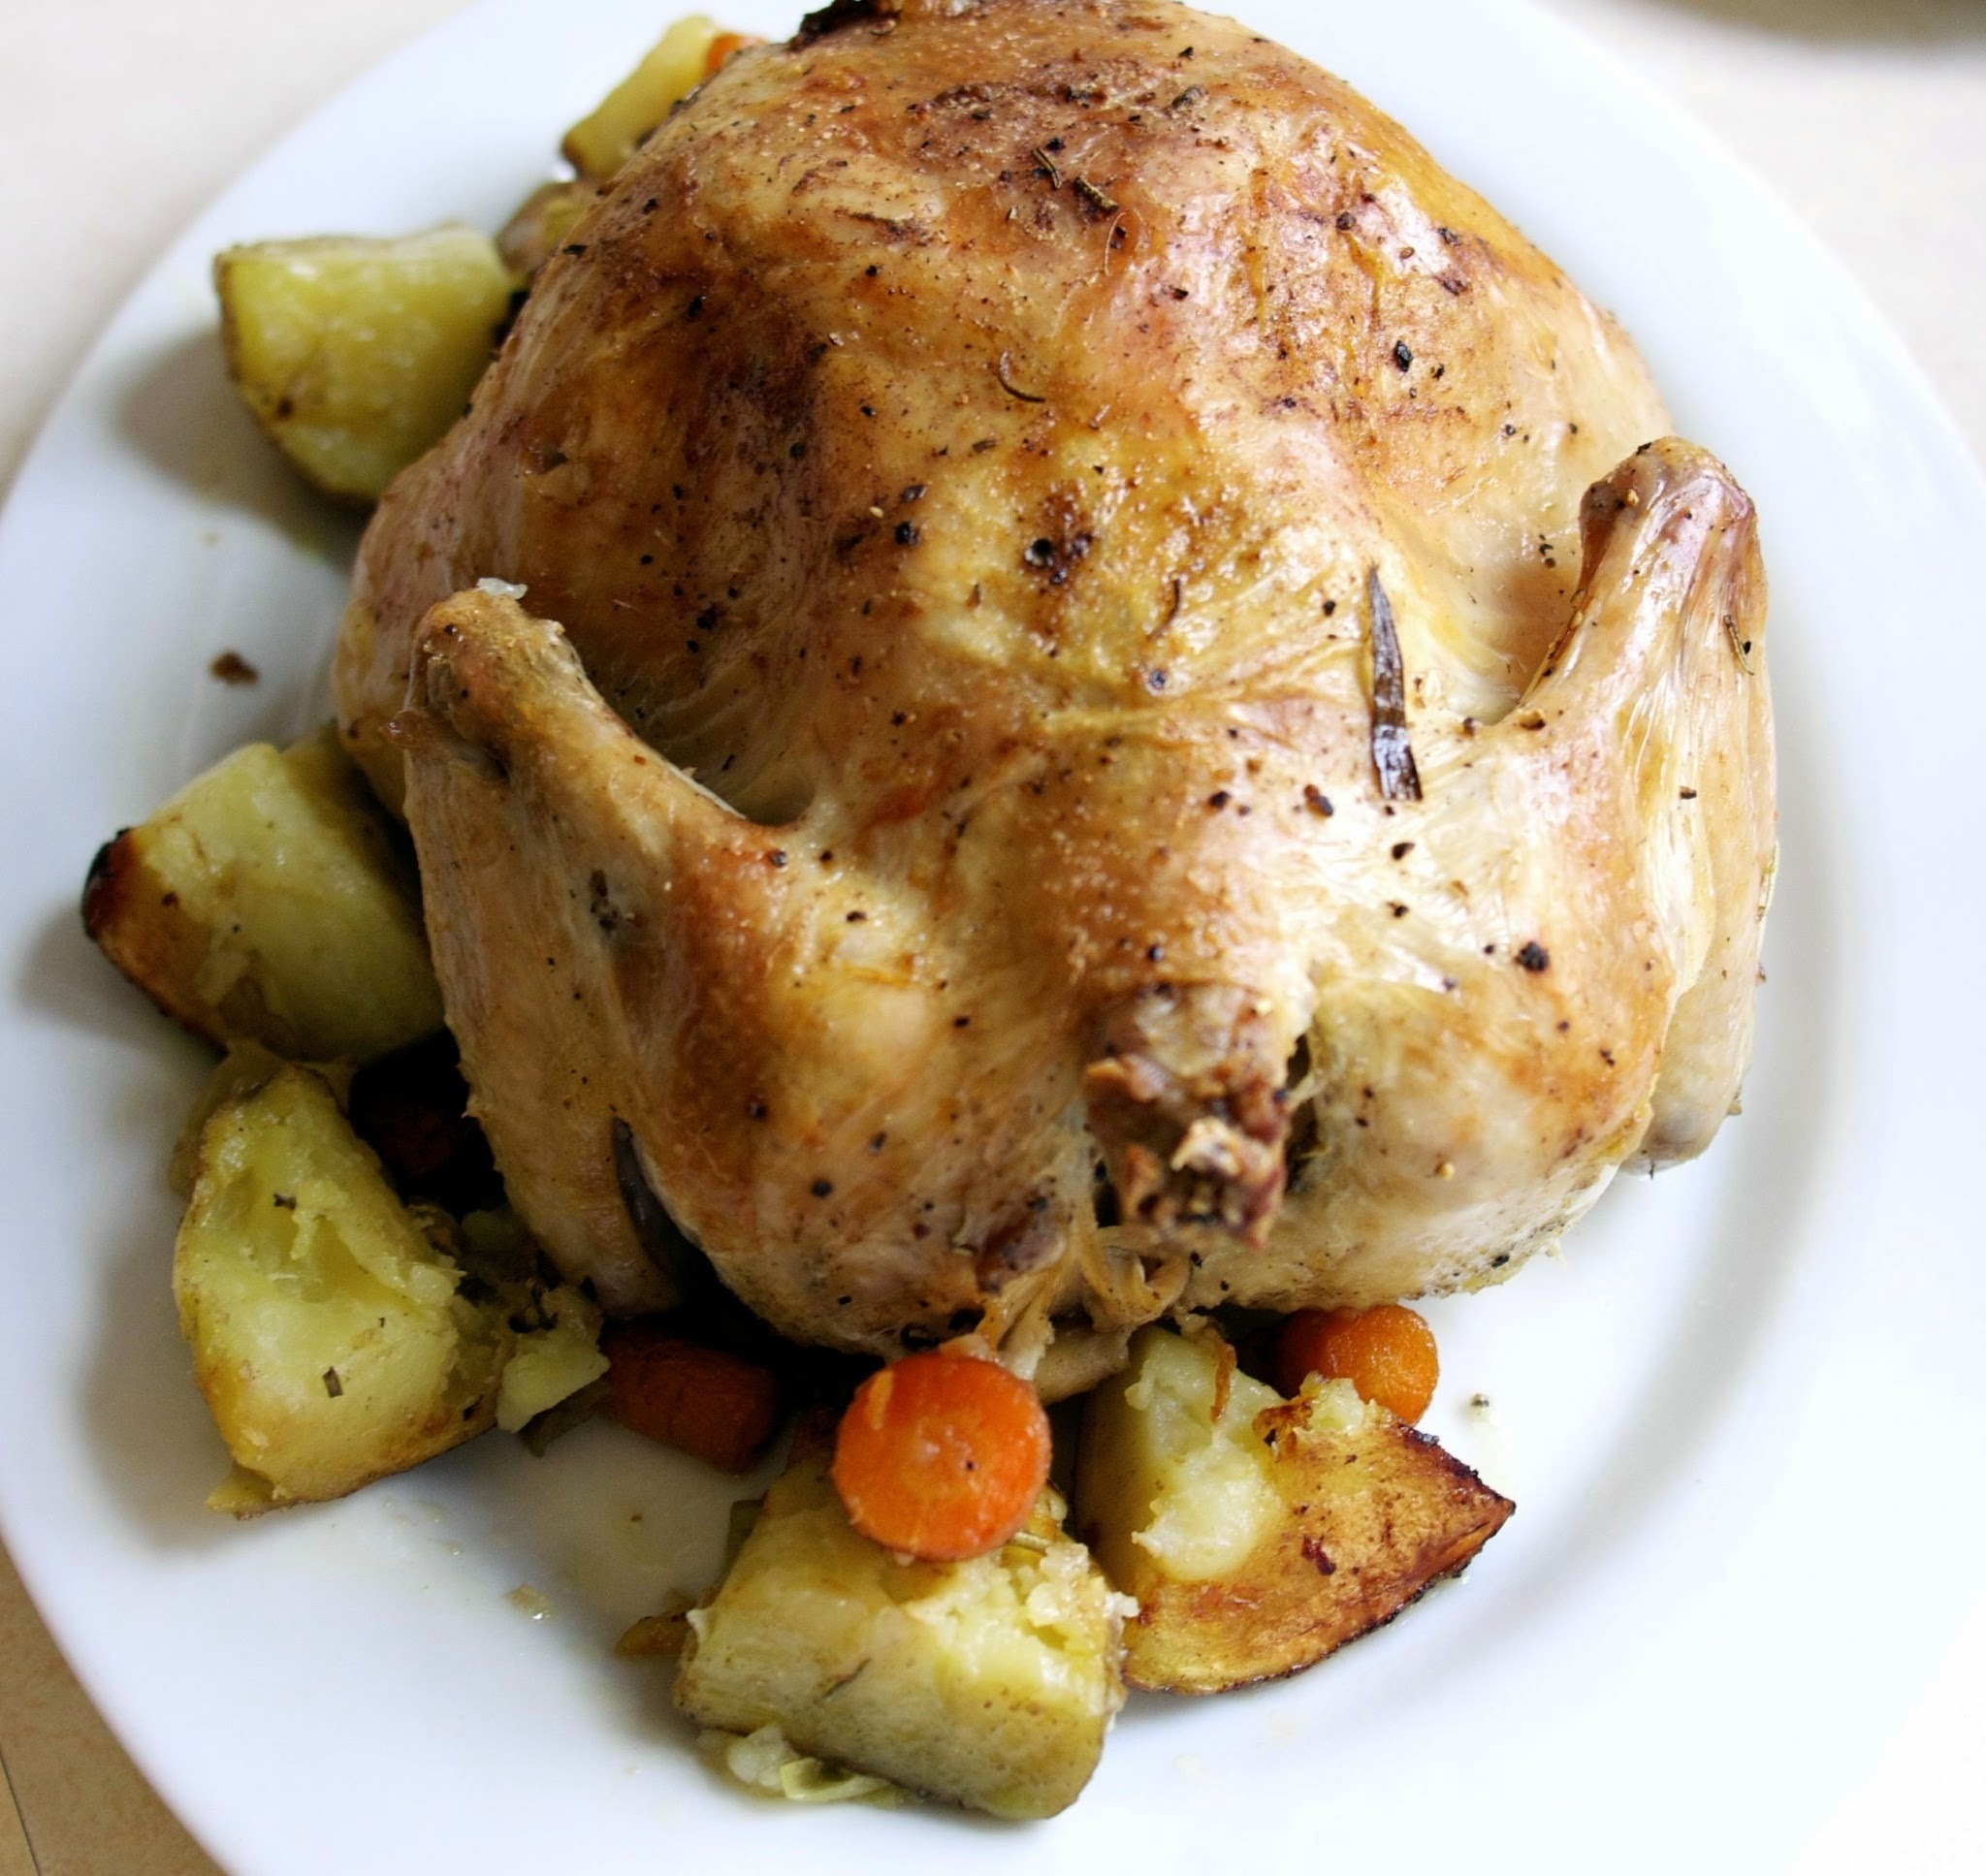 Roast Chicken with Vegetables for Les Paresseux #Foodie Friday #Food Revolution